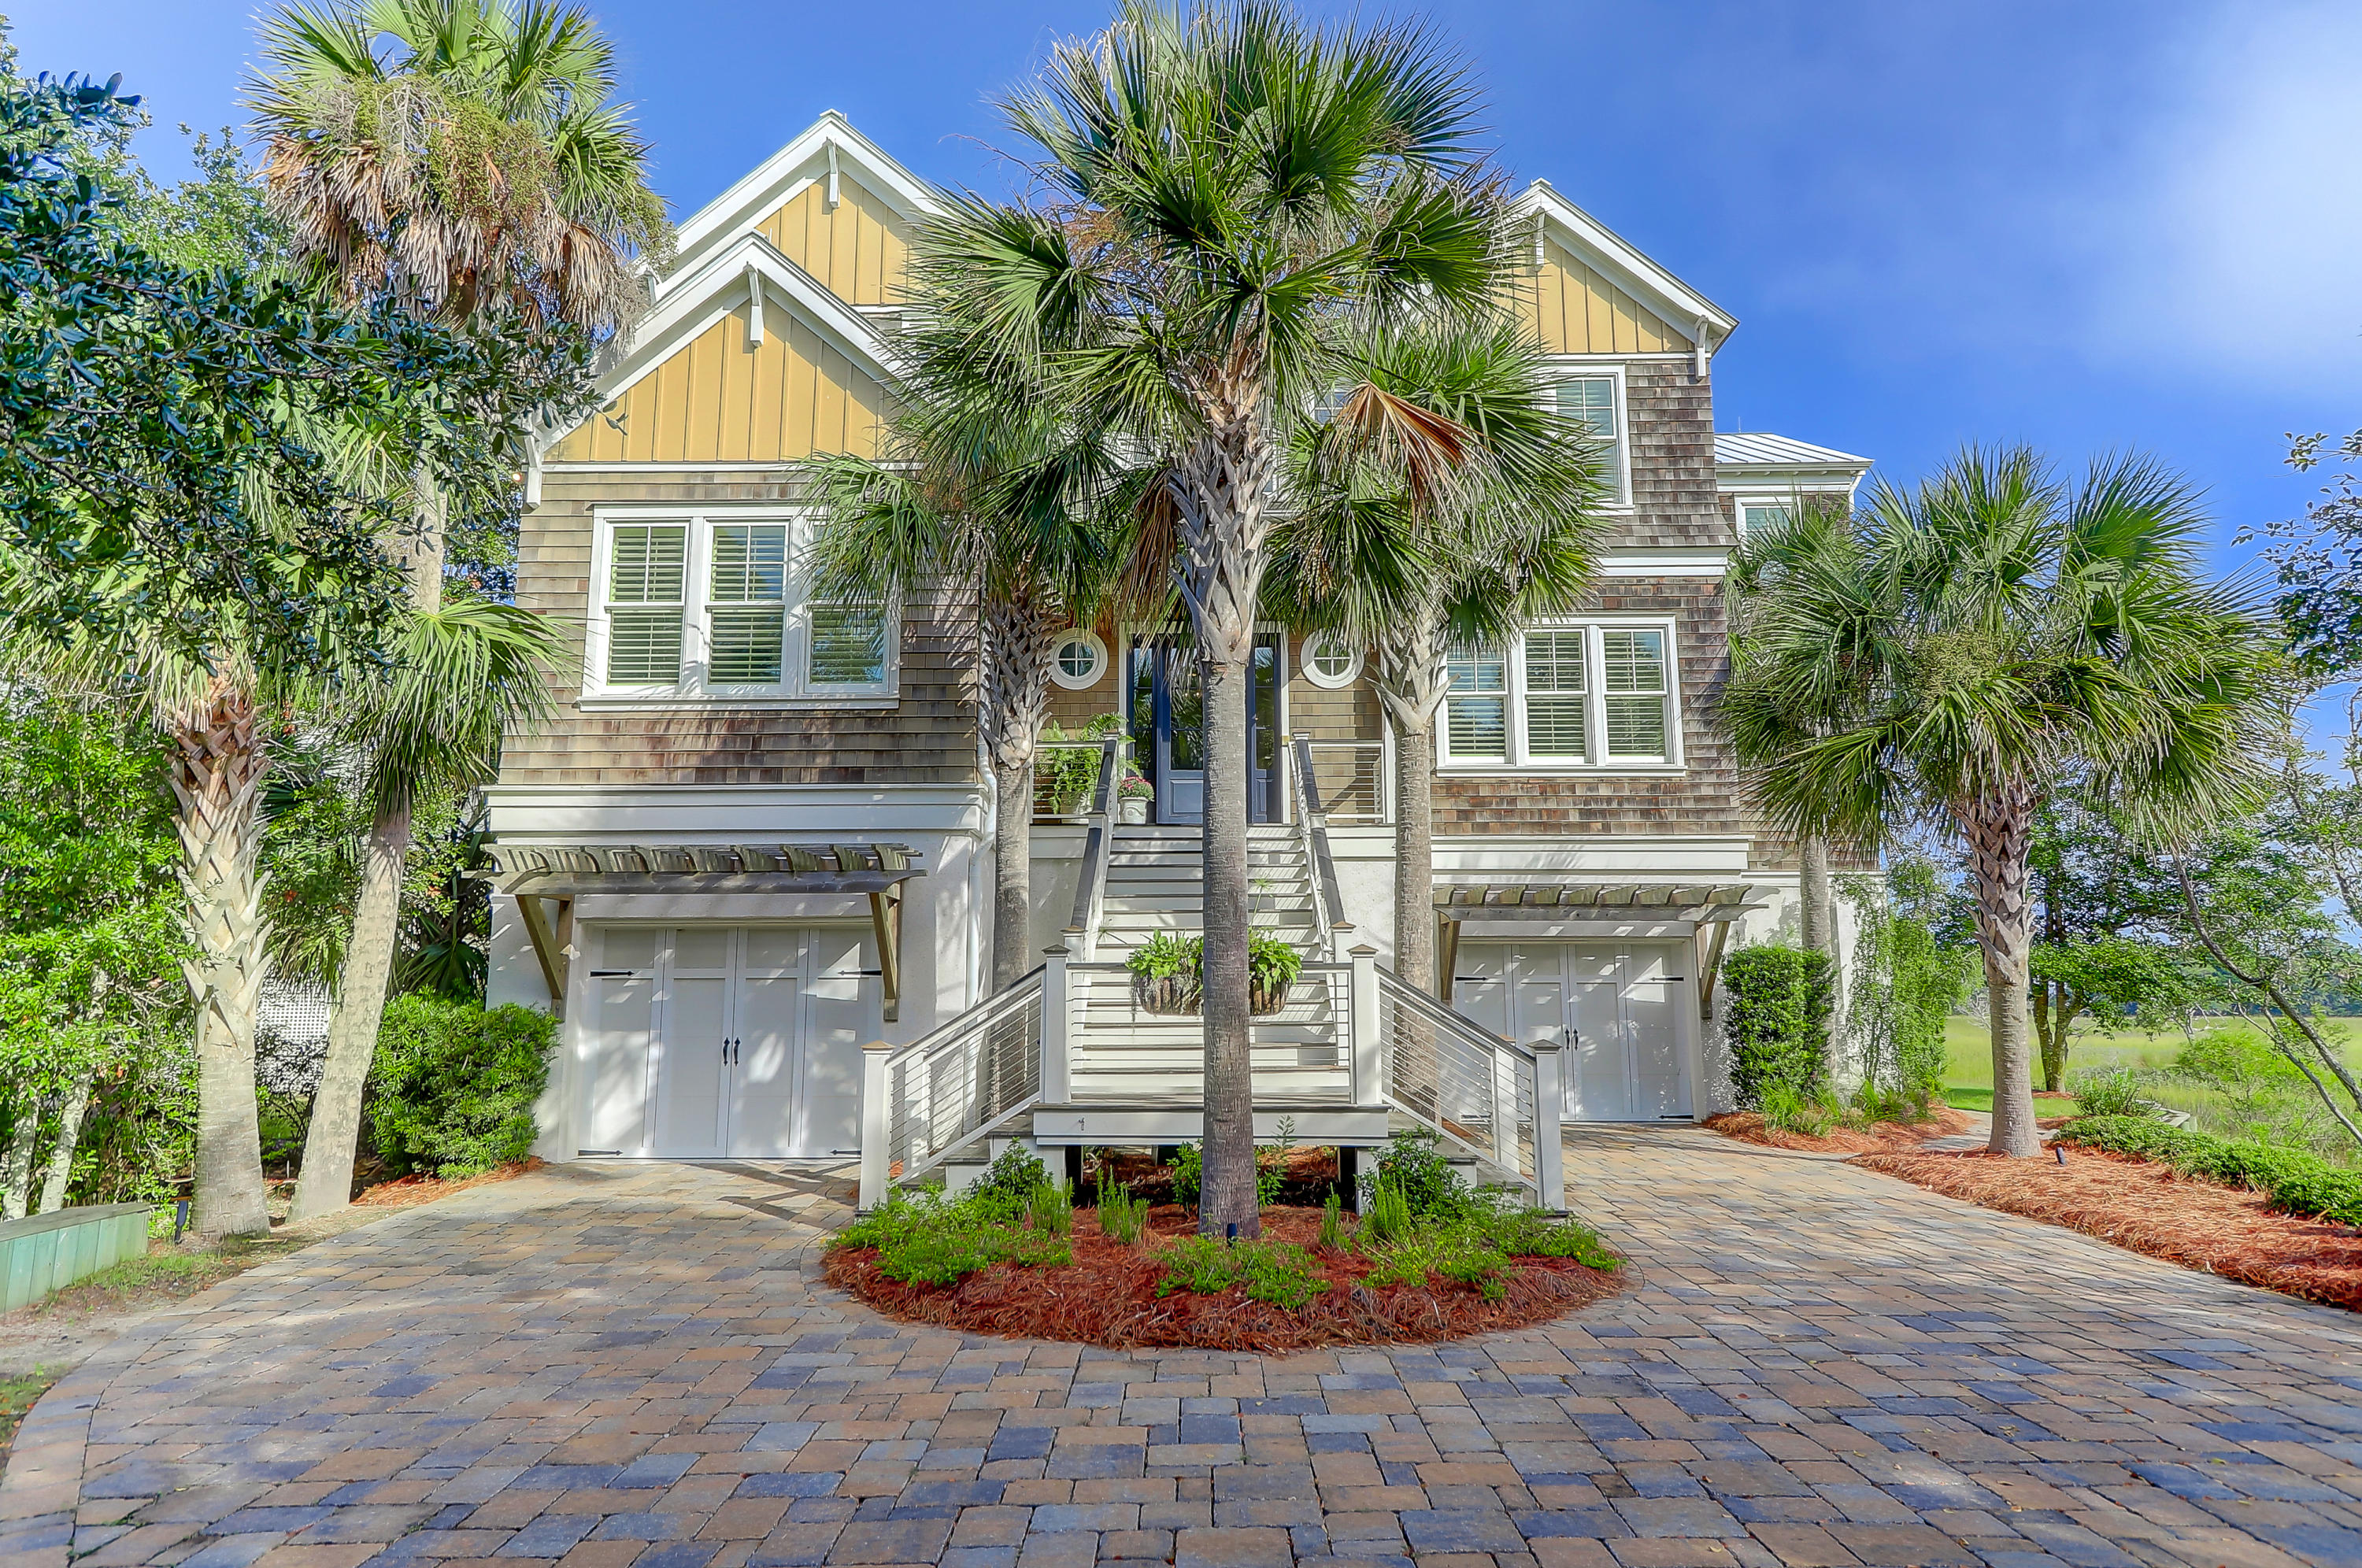 Wild Dunes Homes For Sale - 40 Seagrass, Isle of Palms, SC - 43